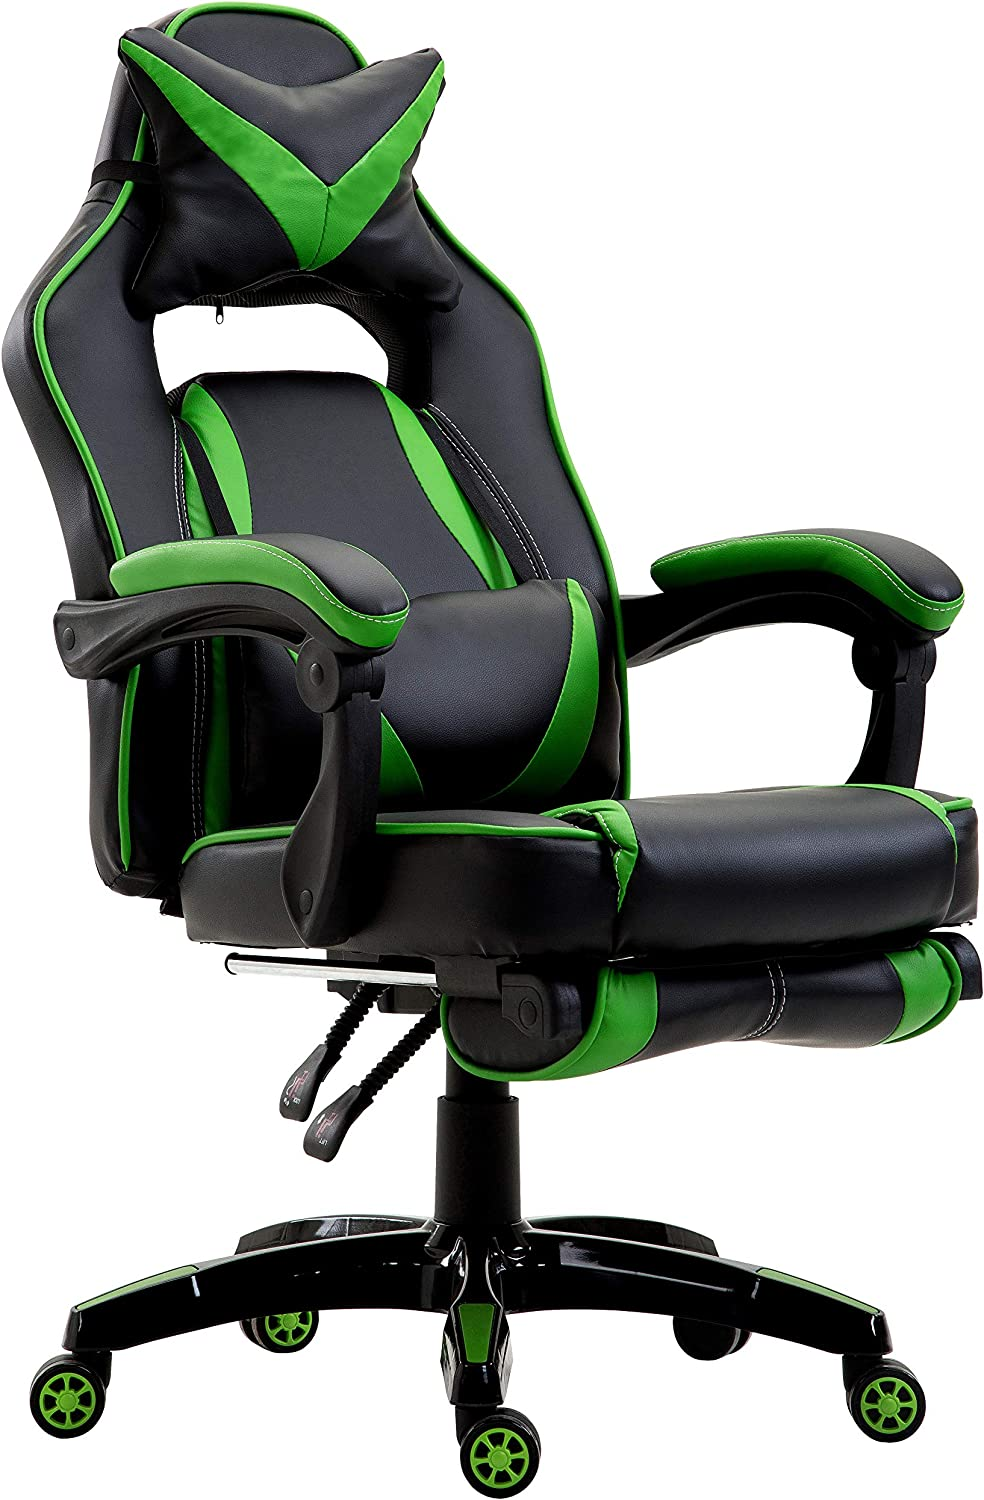 Black /& Green Cherry Tree Furniture CTF High Back Recliner Racing Style Gaming Swivel Chair with Footrest /& Adjustable Lumbar /& Head Cushion